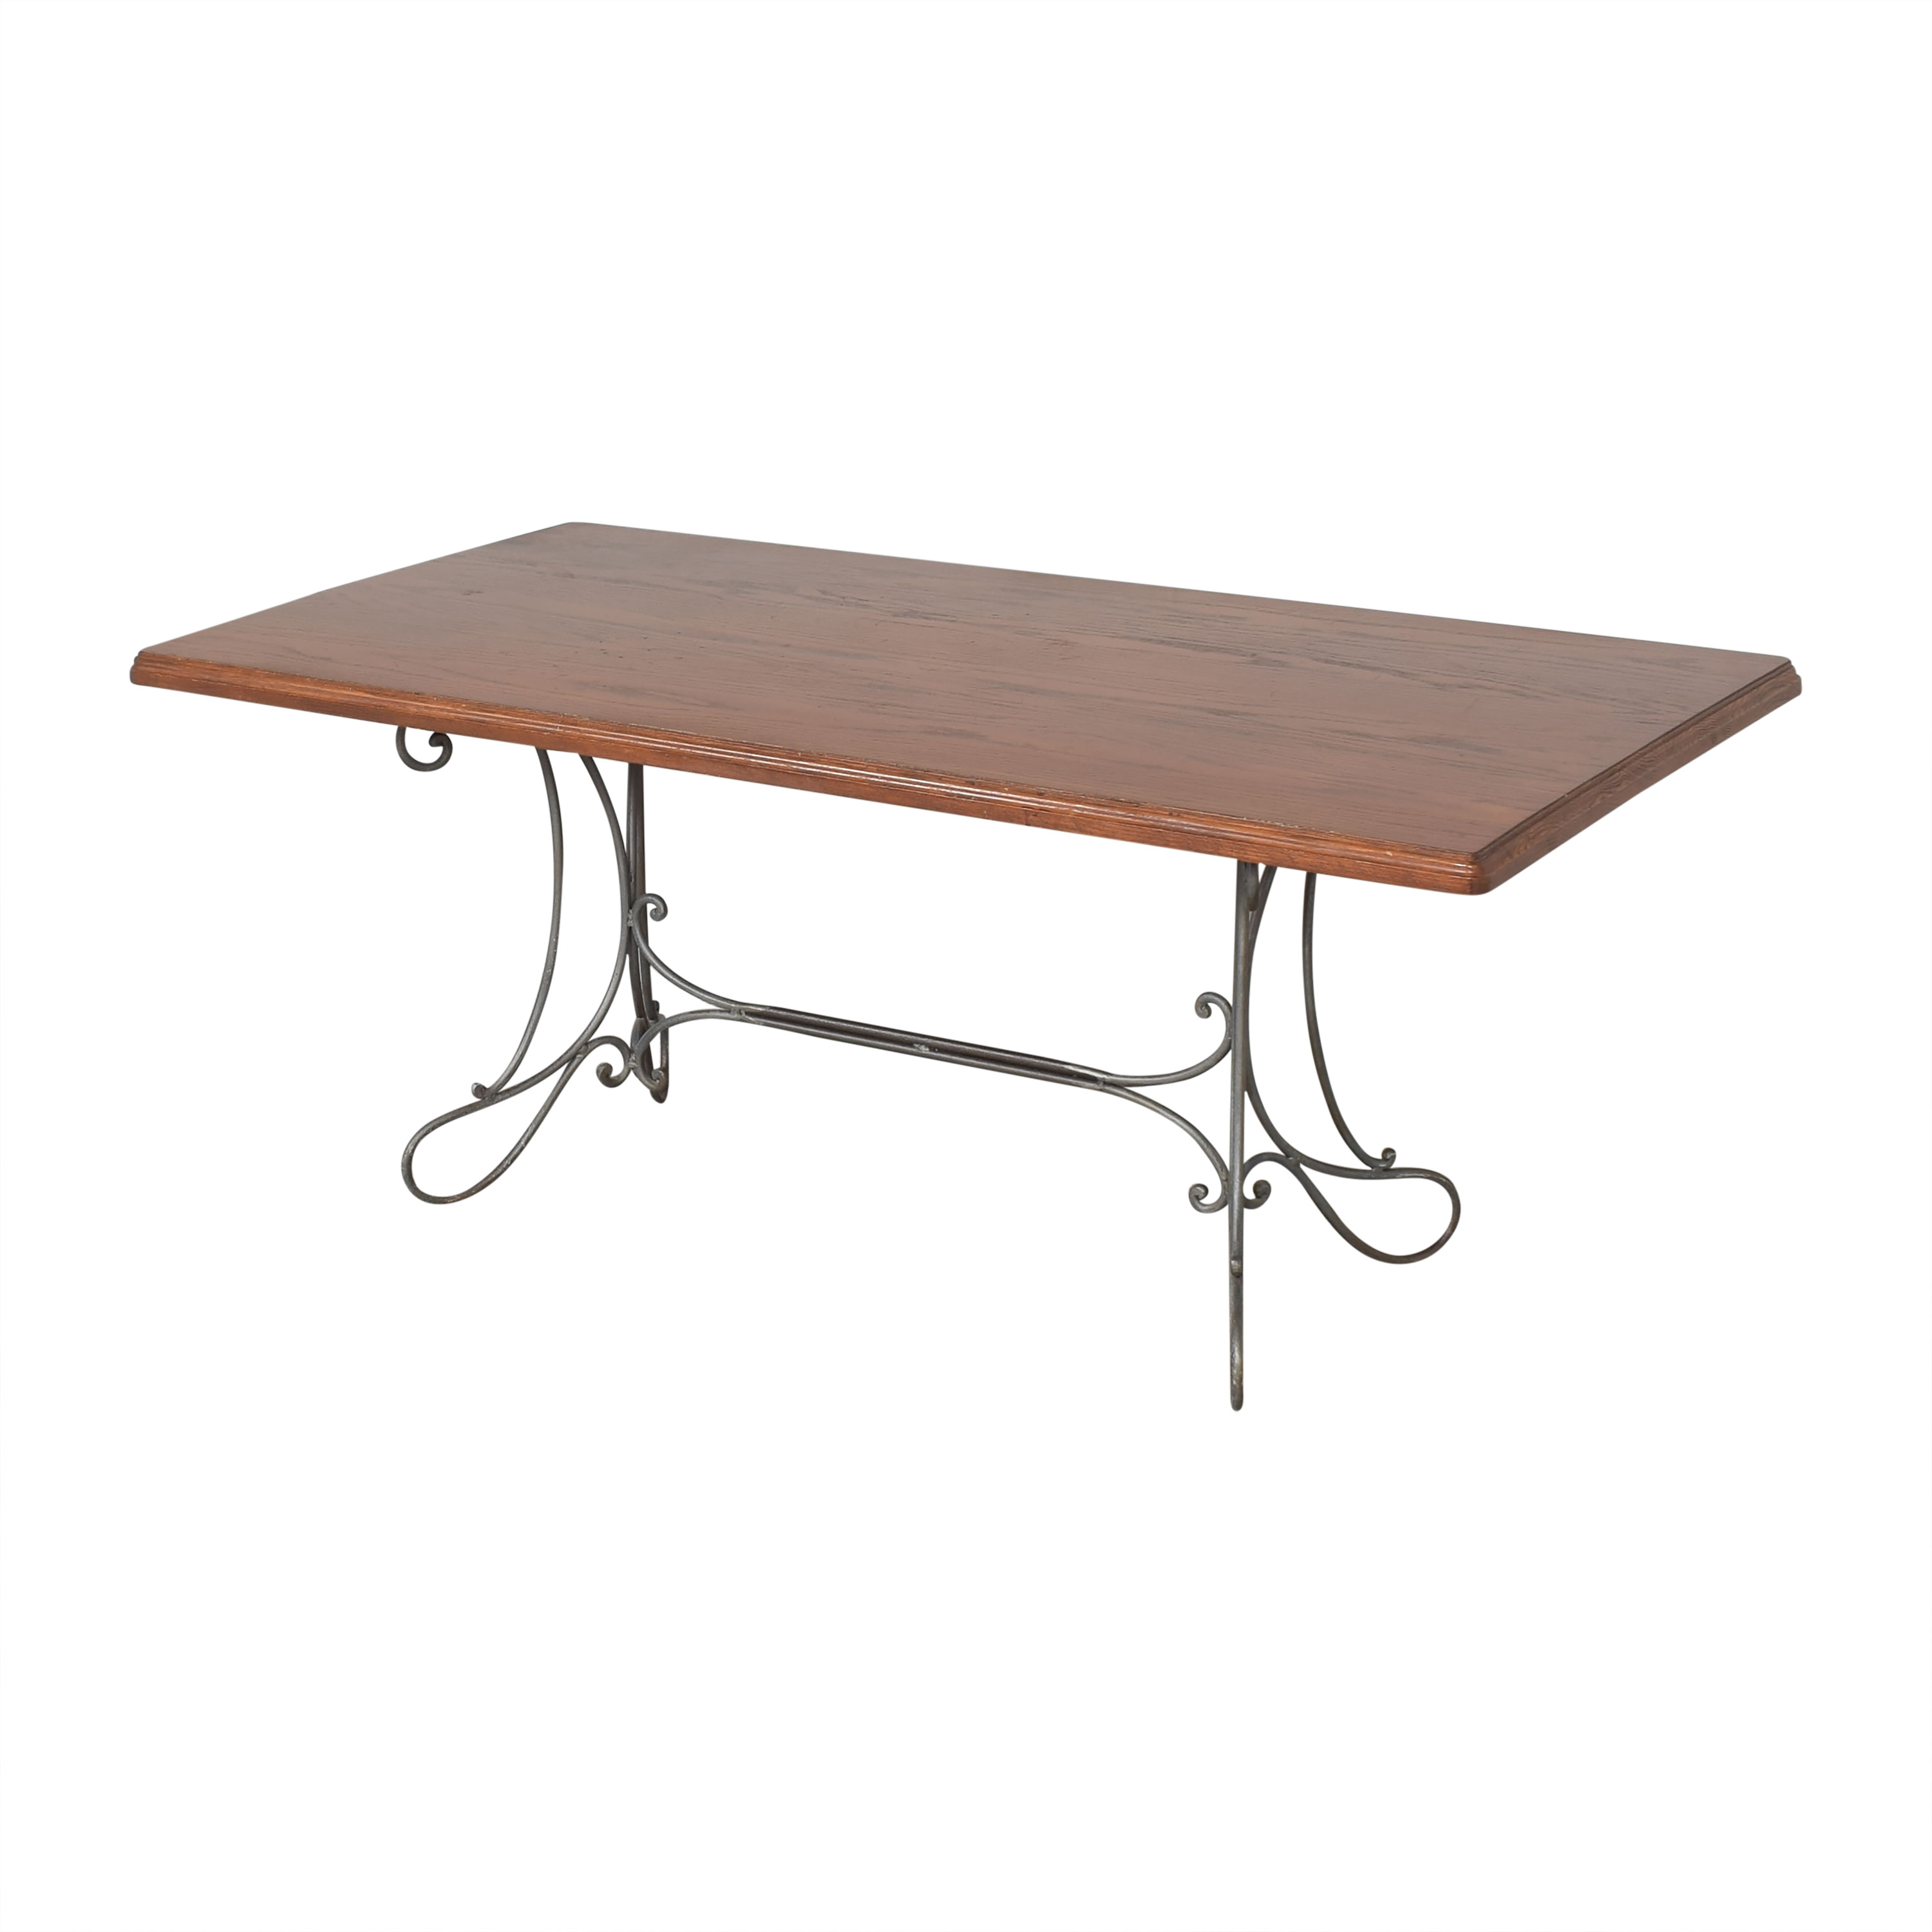 Custom Dining Table with Antique Openwork Base price